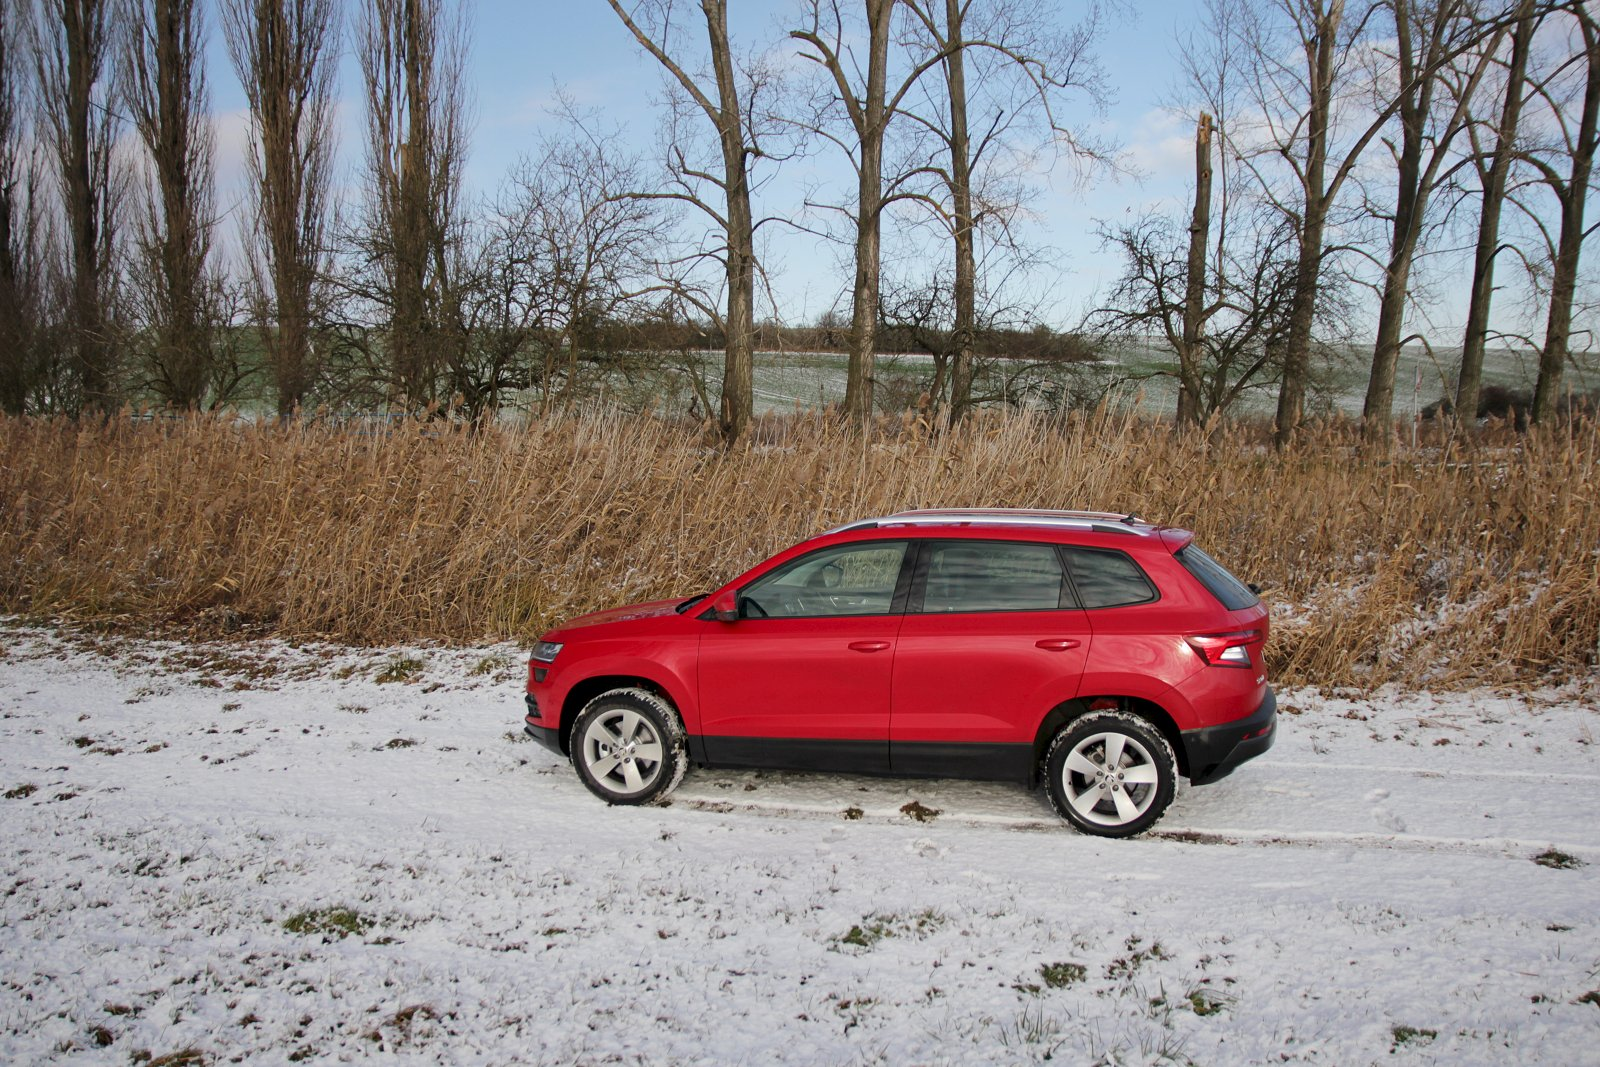 test skoda karoq 15 tsi 110 kw 4 auto. Black Bedroom Furniture Sets. Home Design Ideas